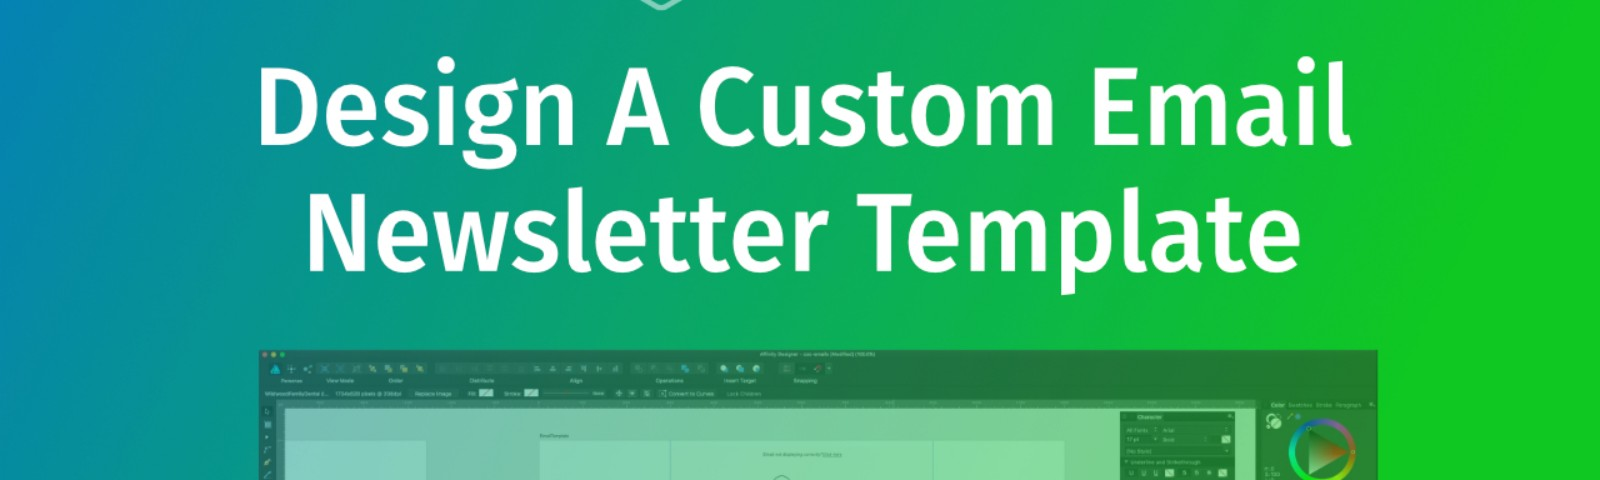 Design A Custom Email Template - Part 1 \u2013 Web-Crunch